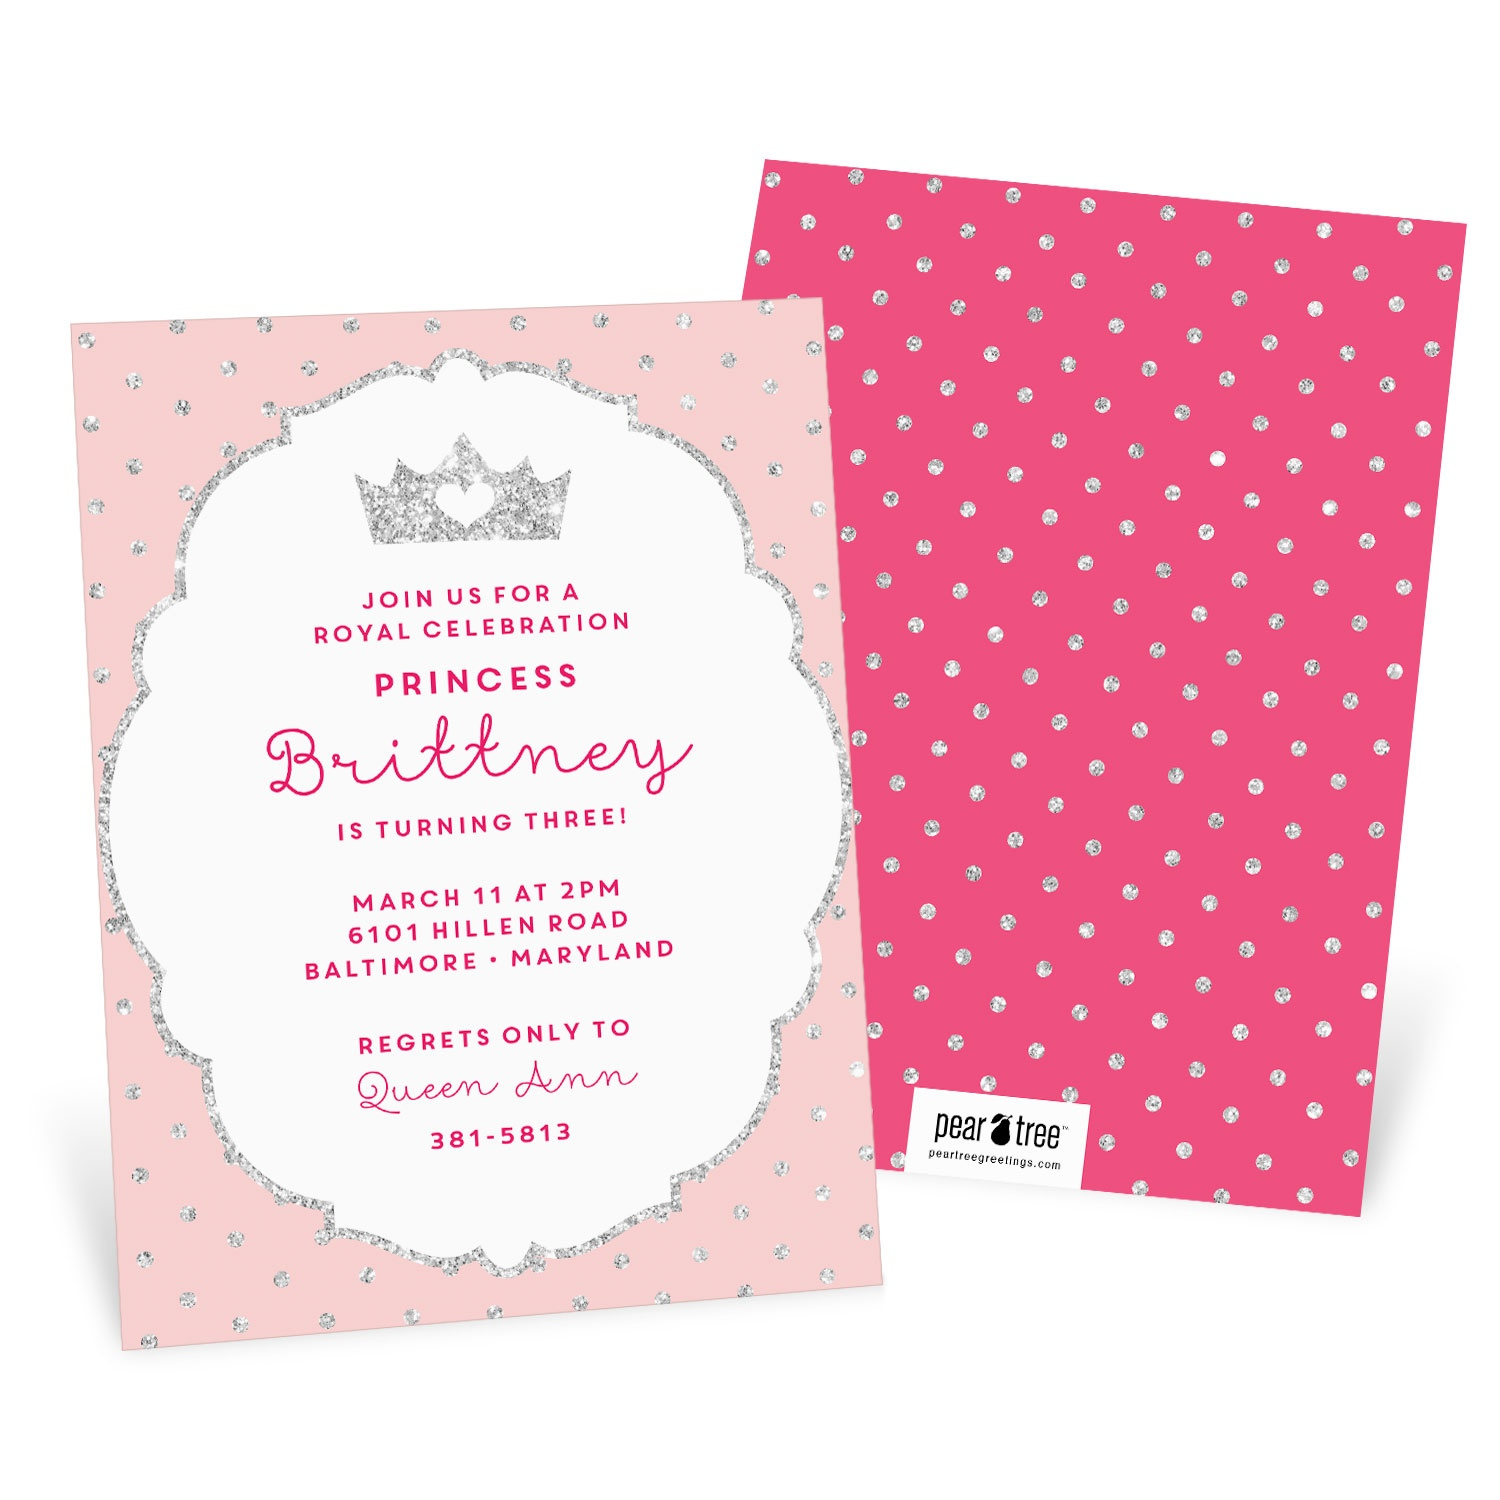 Princess Party Invitation Ideas The Best Invitation In 2017 – Princess Party Invitation Ideas